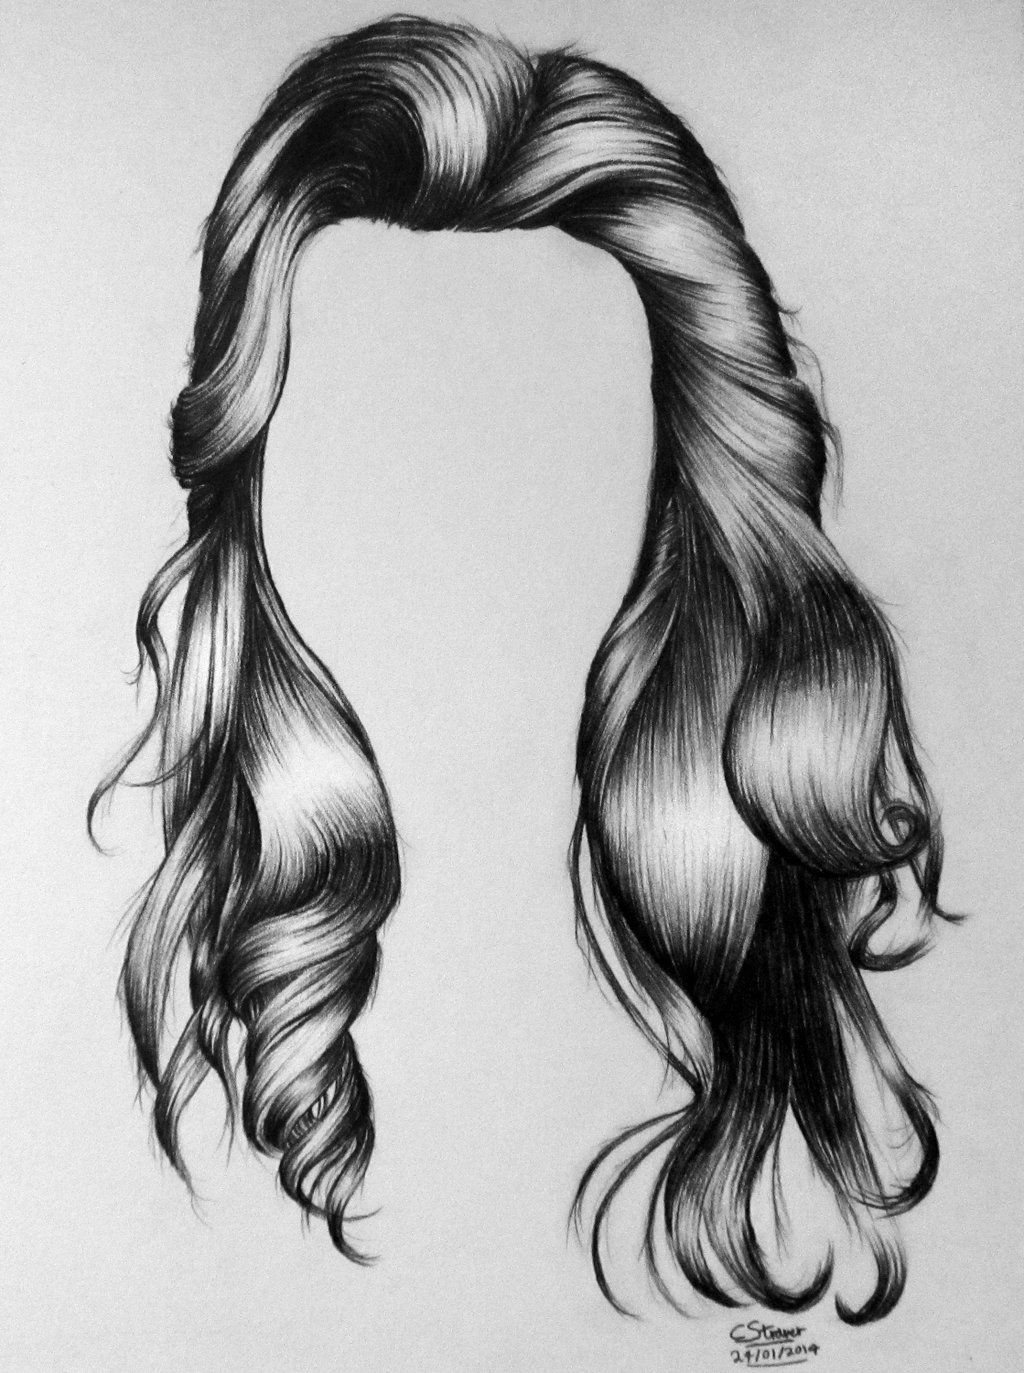 Realistic Hair Drawing By Lethalchris On Deviantart Realistic Hair Drawing Realistic Drawings How To Draw Hair